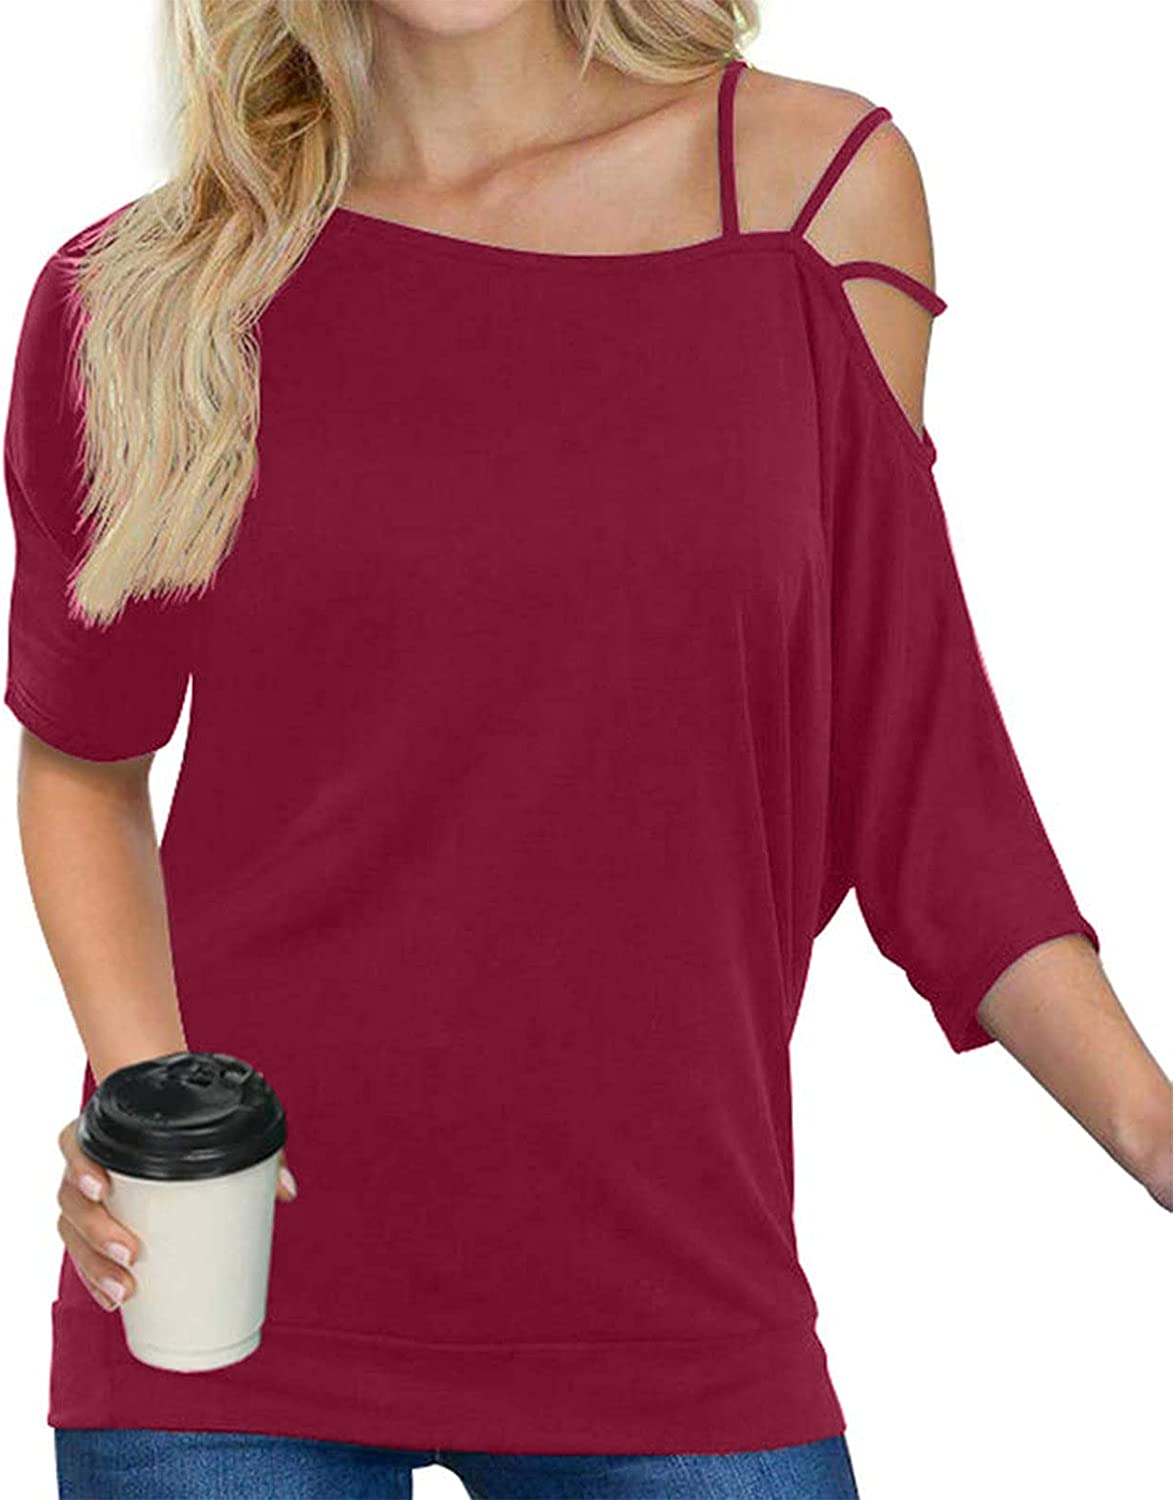 Tshirts for Womens Selling Casual Tops Off One Women Strap New item Shoulder